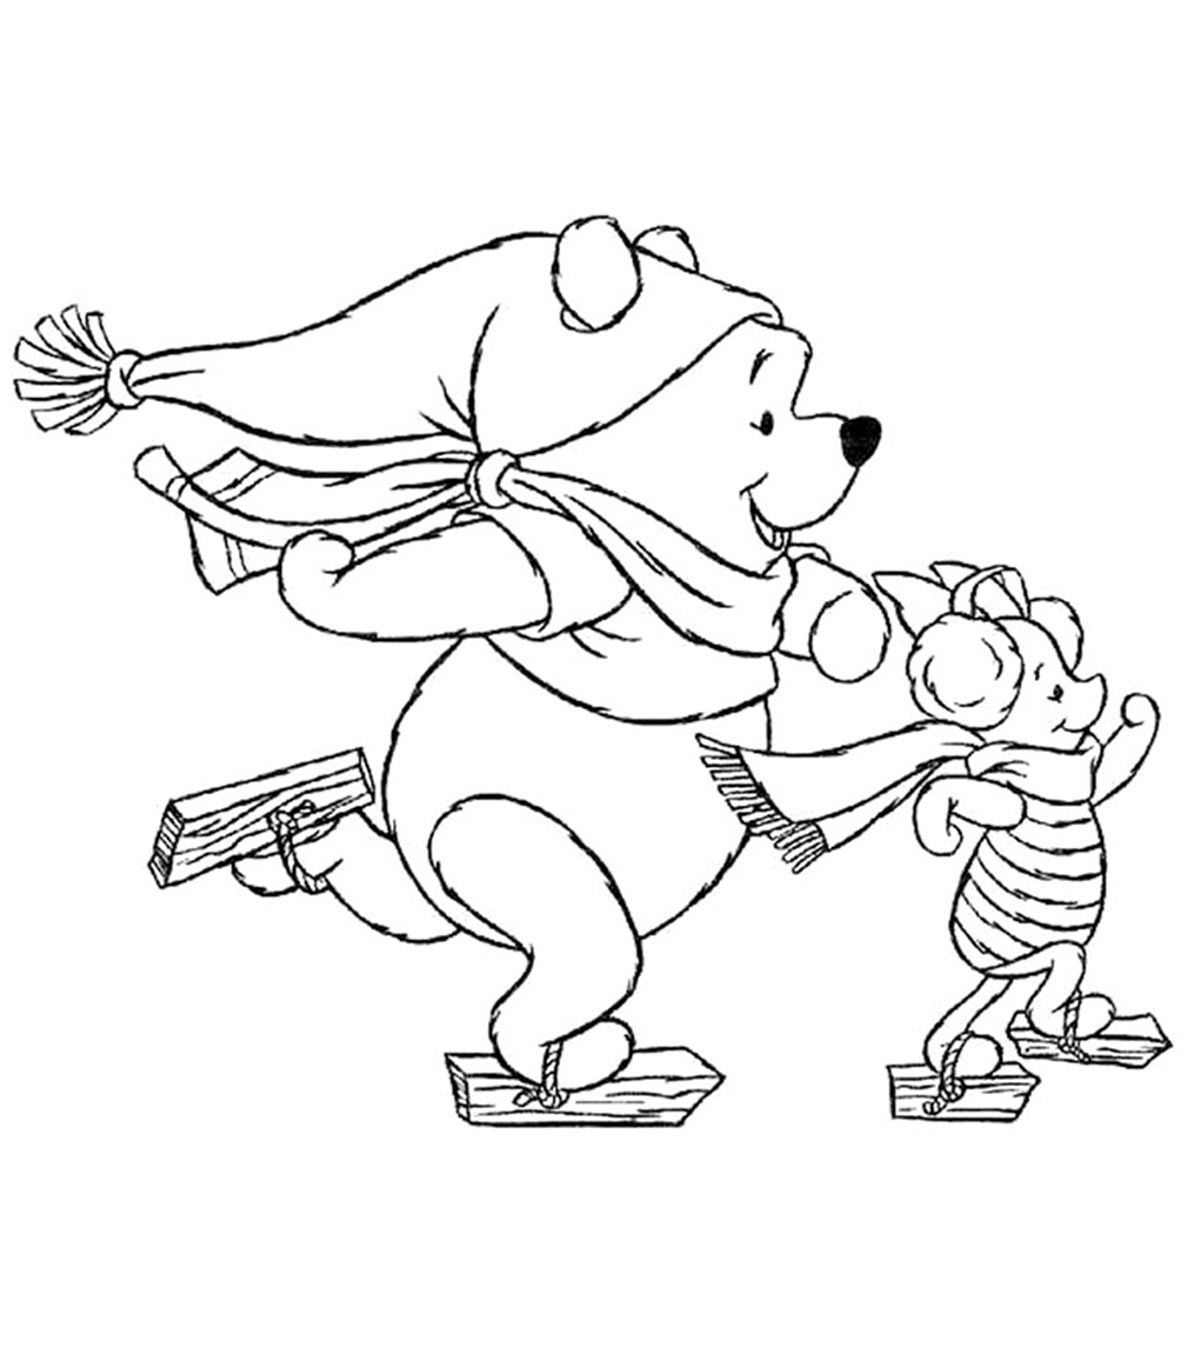 Disney Coloring Pages - MomJunction